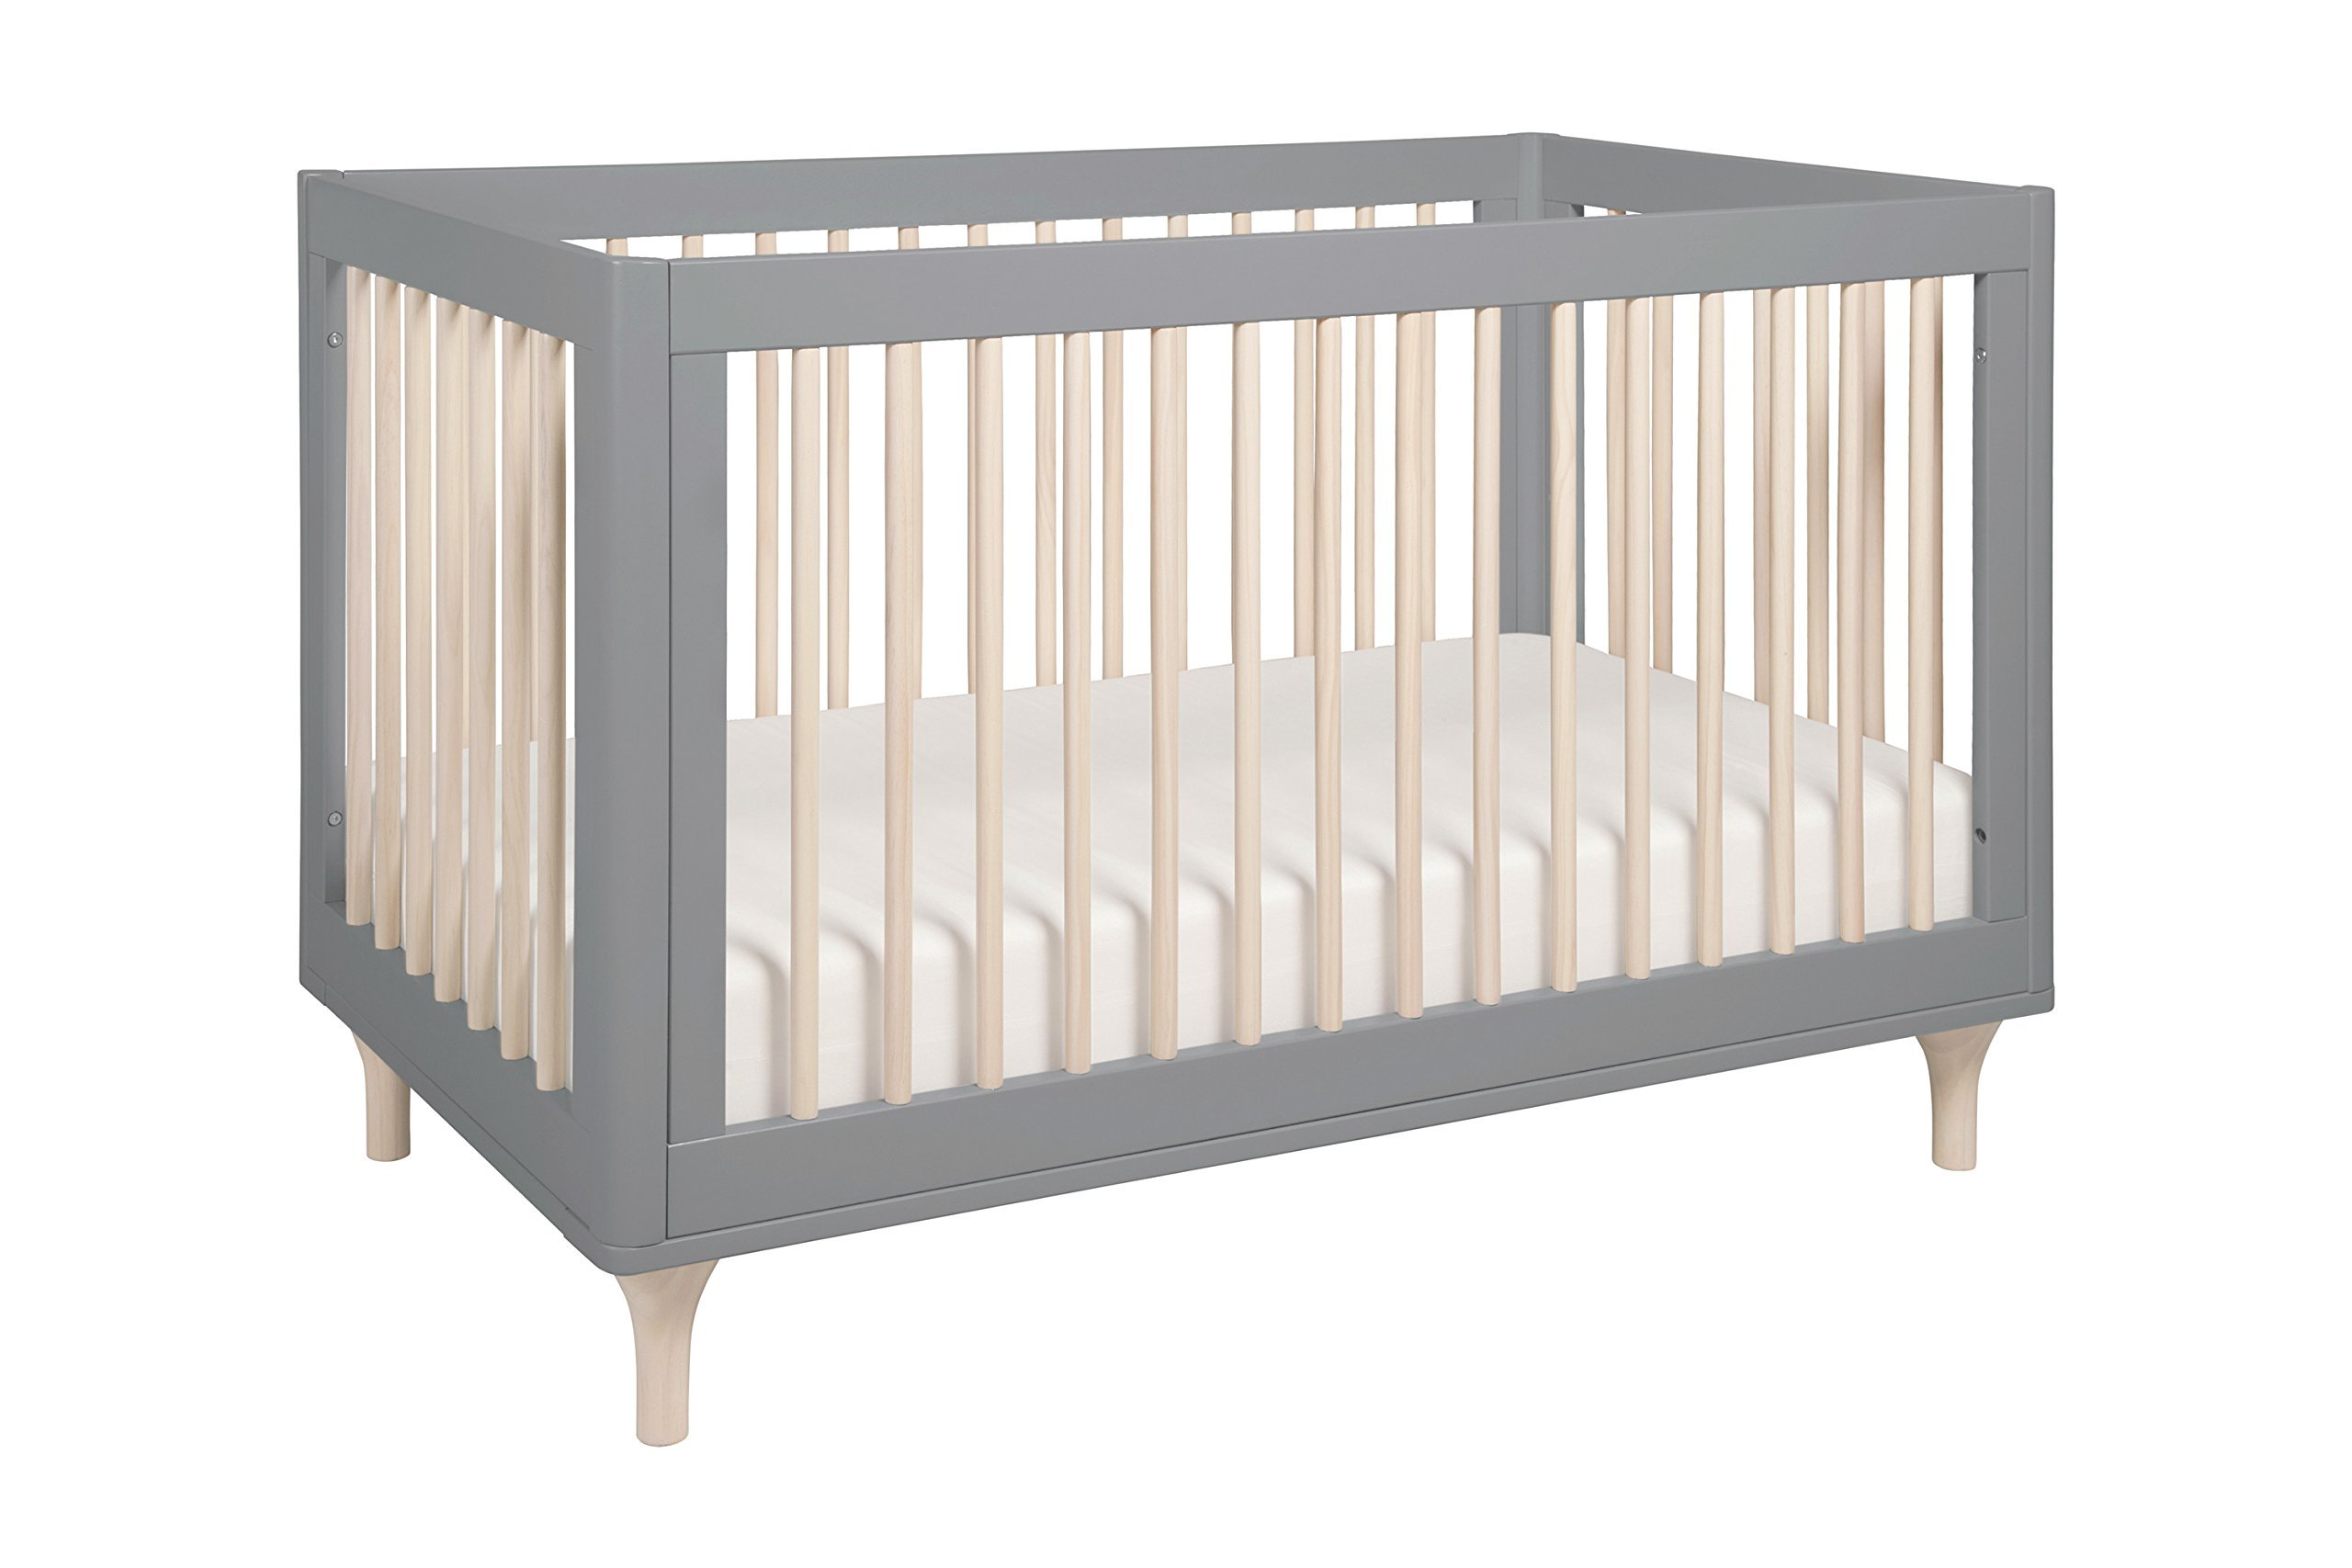 Babyletto Lolly 3-in-1 Convertible Crib with Toddler Bed Conversion Kit, Grey / Washed Natural